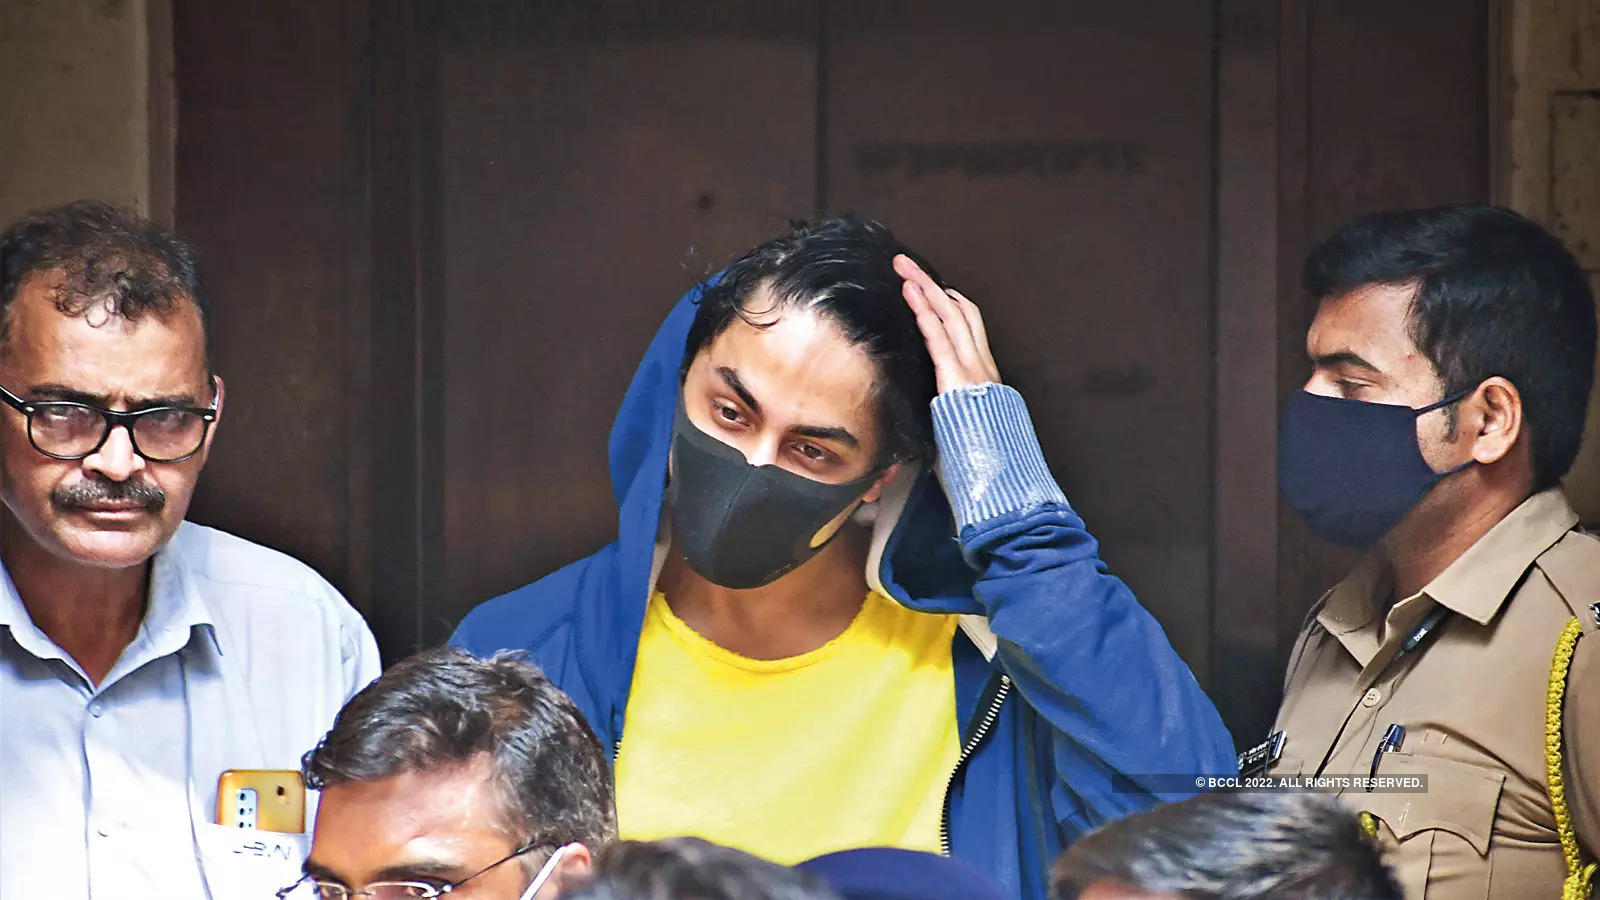 , No bail for Aryan Khan so far: The how & why, The World Live Breaking News Coverage & Updates IN ENGLISH